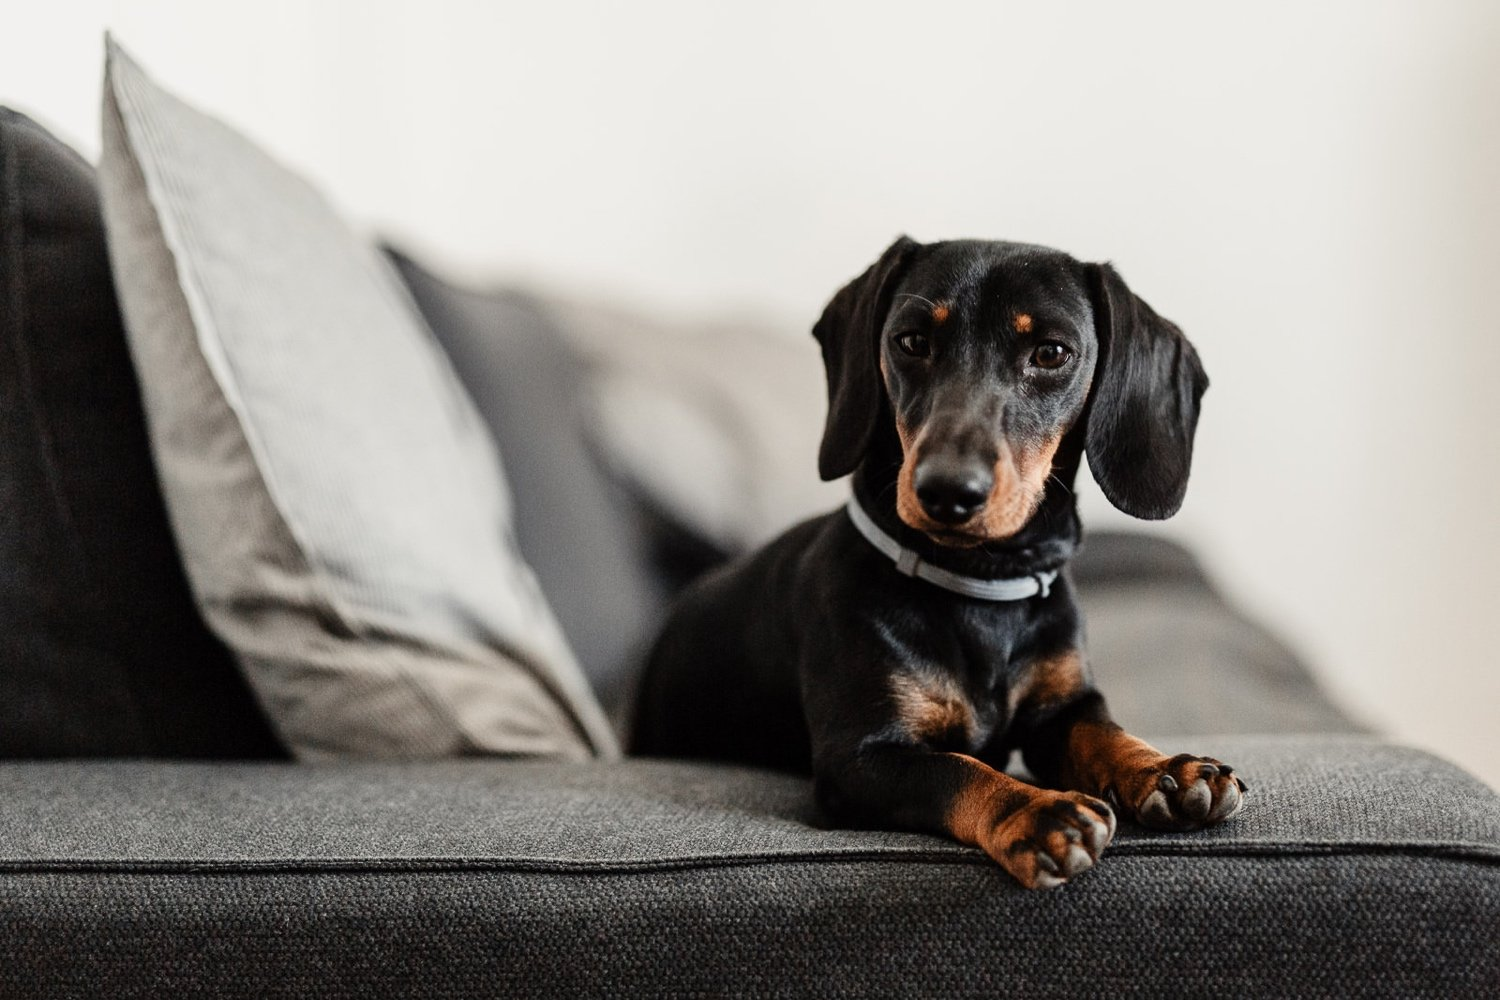 Dachshund, pet photographer